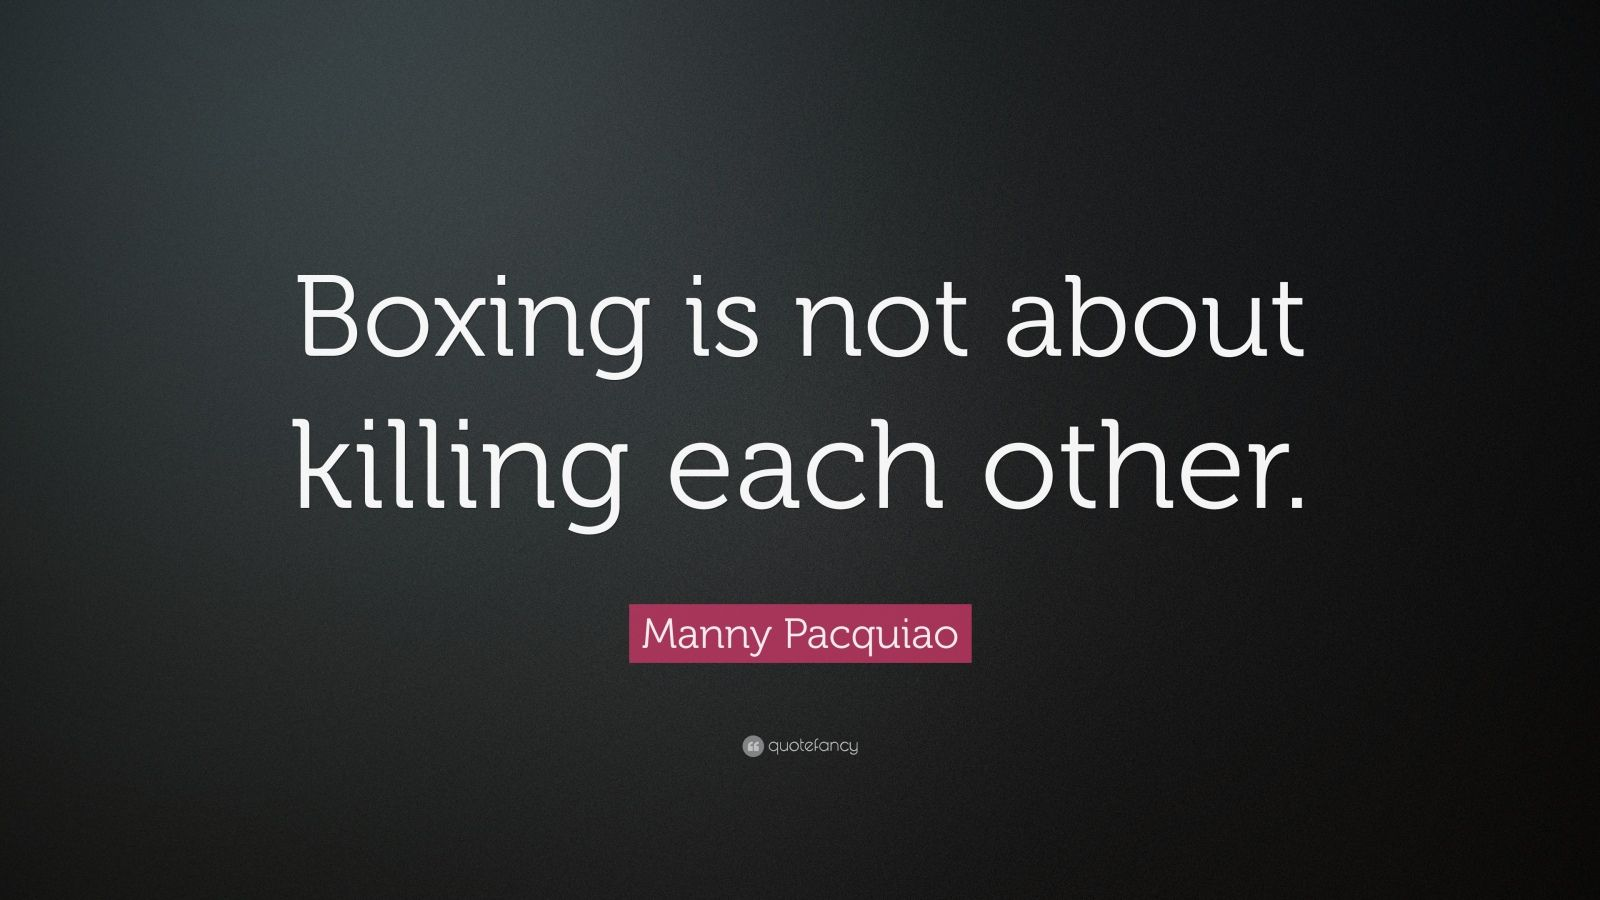 Casey Neistat Quotes Wallpaper Manny Pacquiao Quote Boxing Is Not About Killing Each